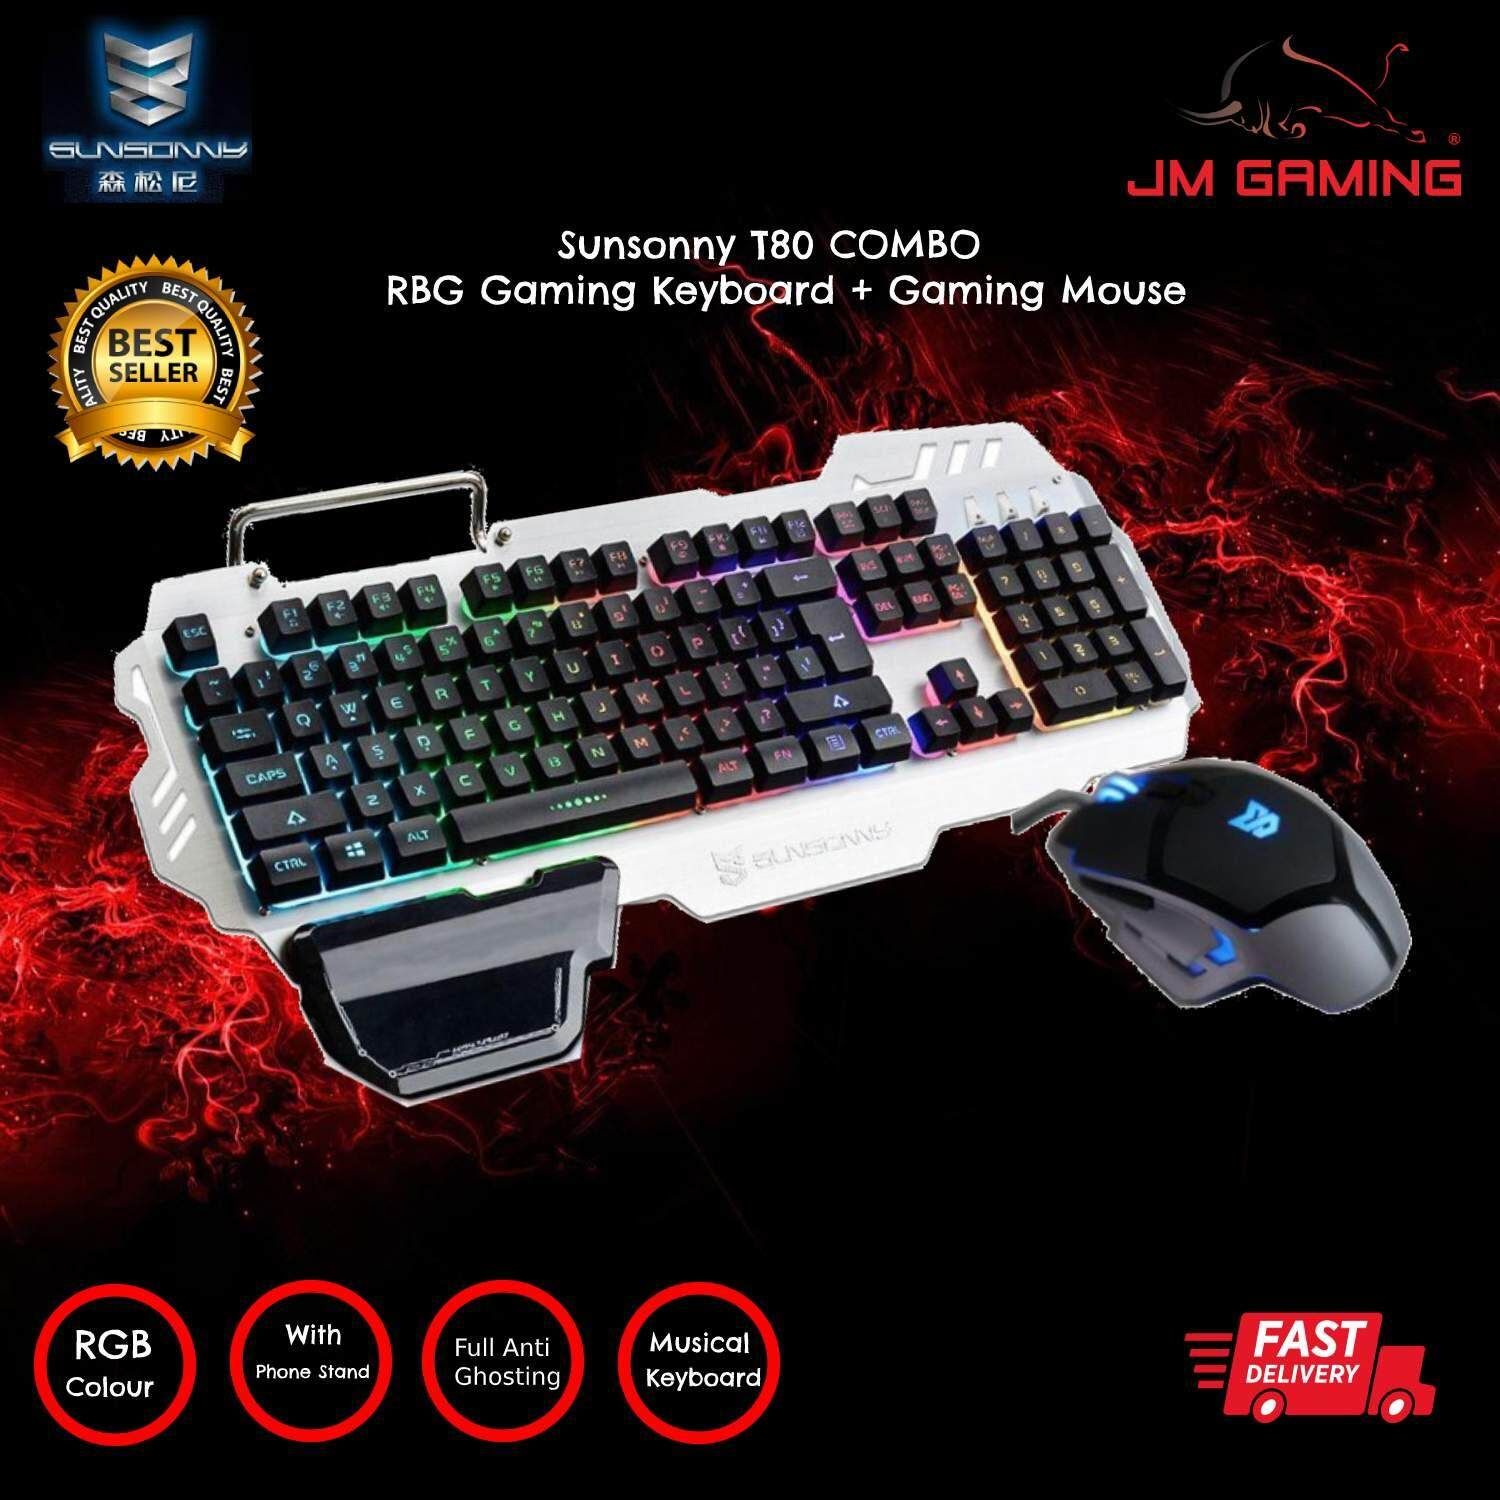 SUNSONNY COMBO T80 (K10 RGB MEMBRANE MUSIC GAMING KEYBOARD + GAMING MOUSE) with phone stand and hand wrist for Computer / PC Malaysia